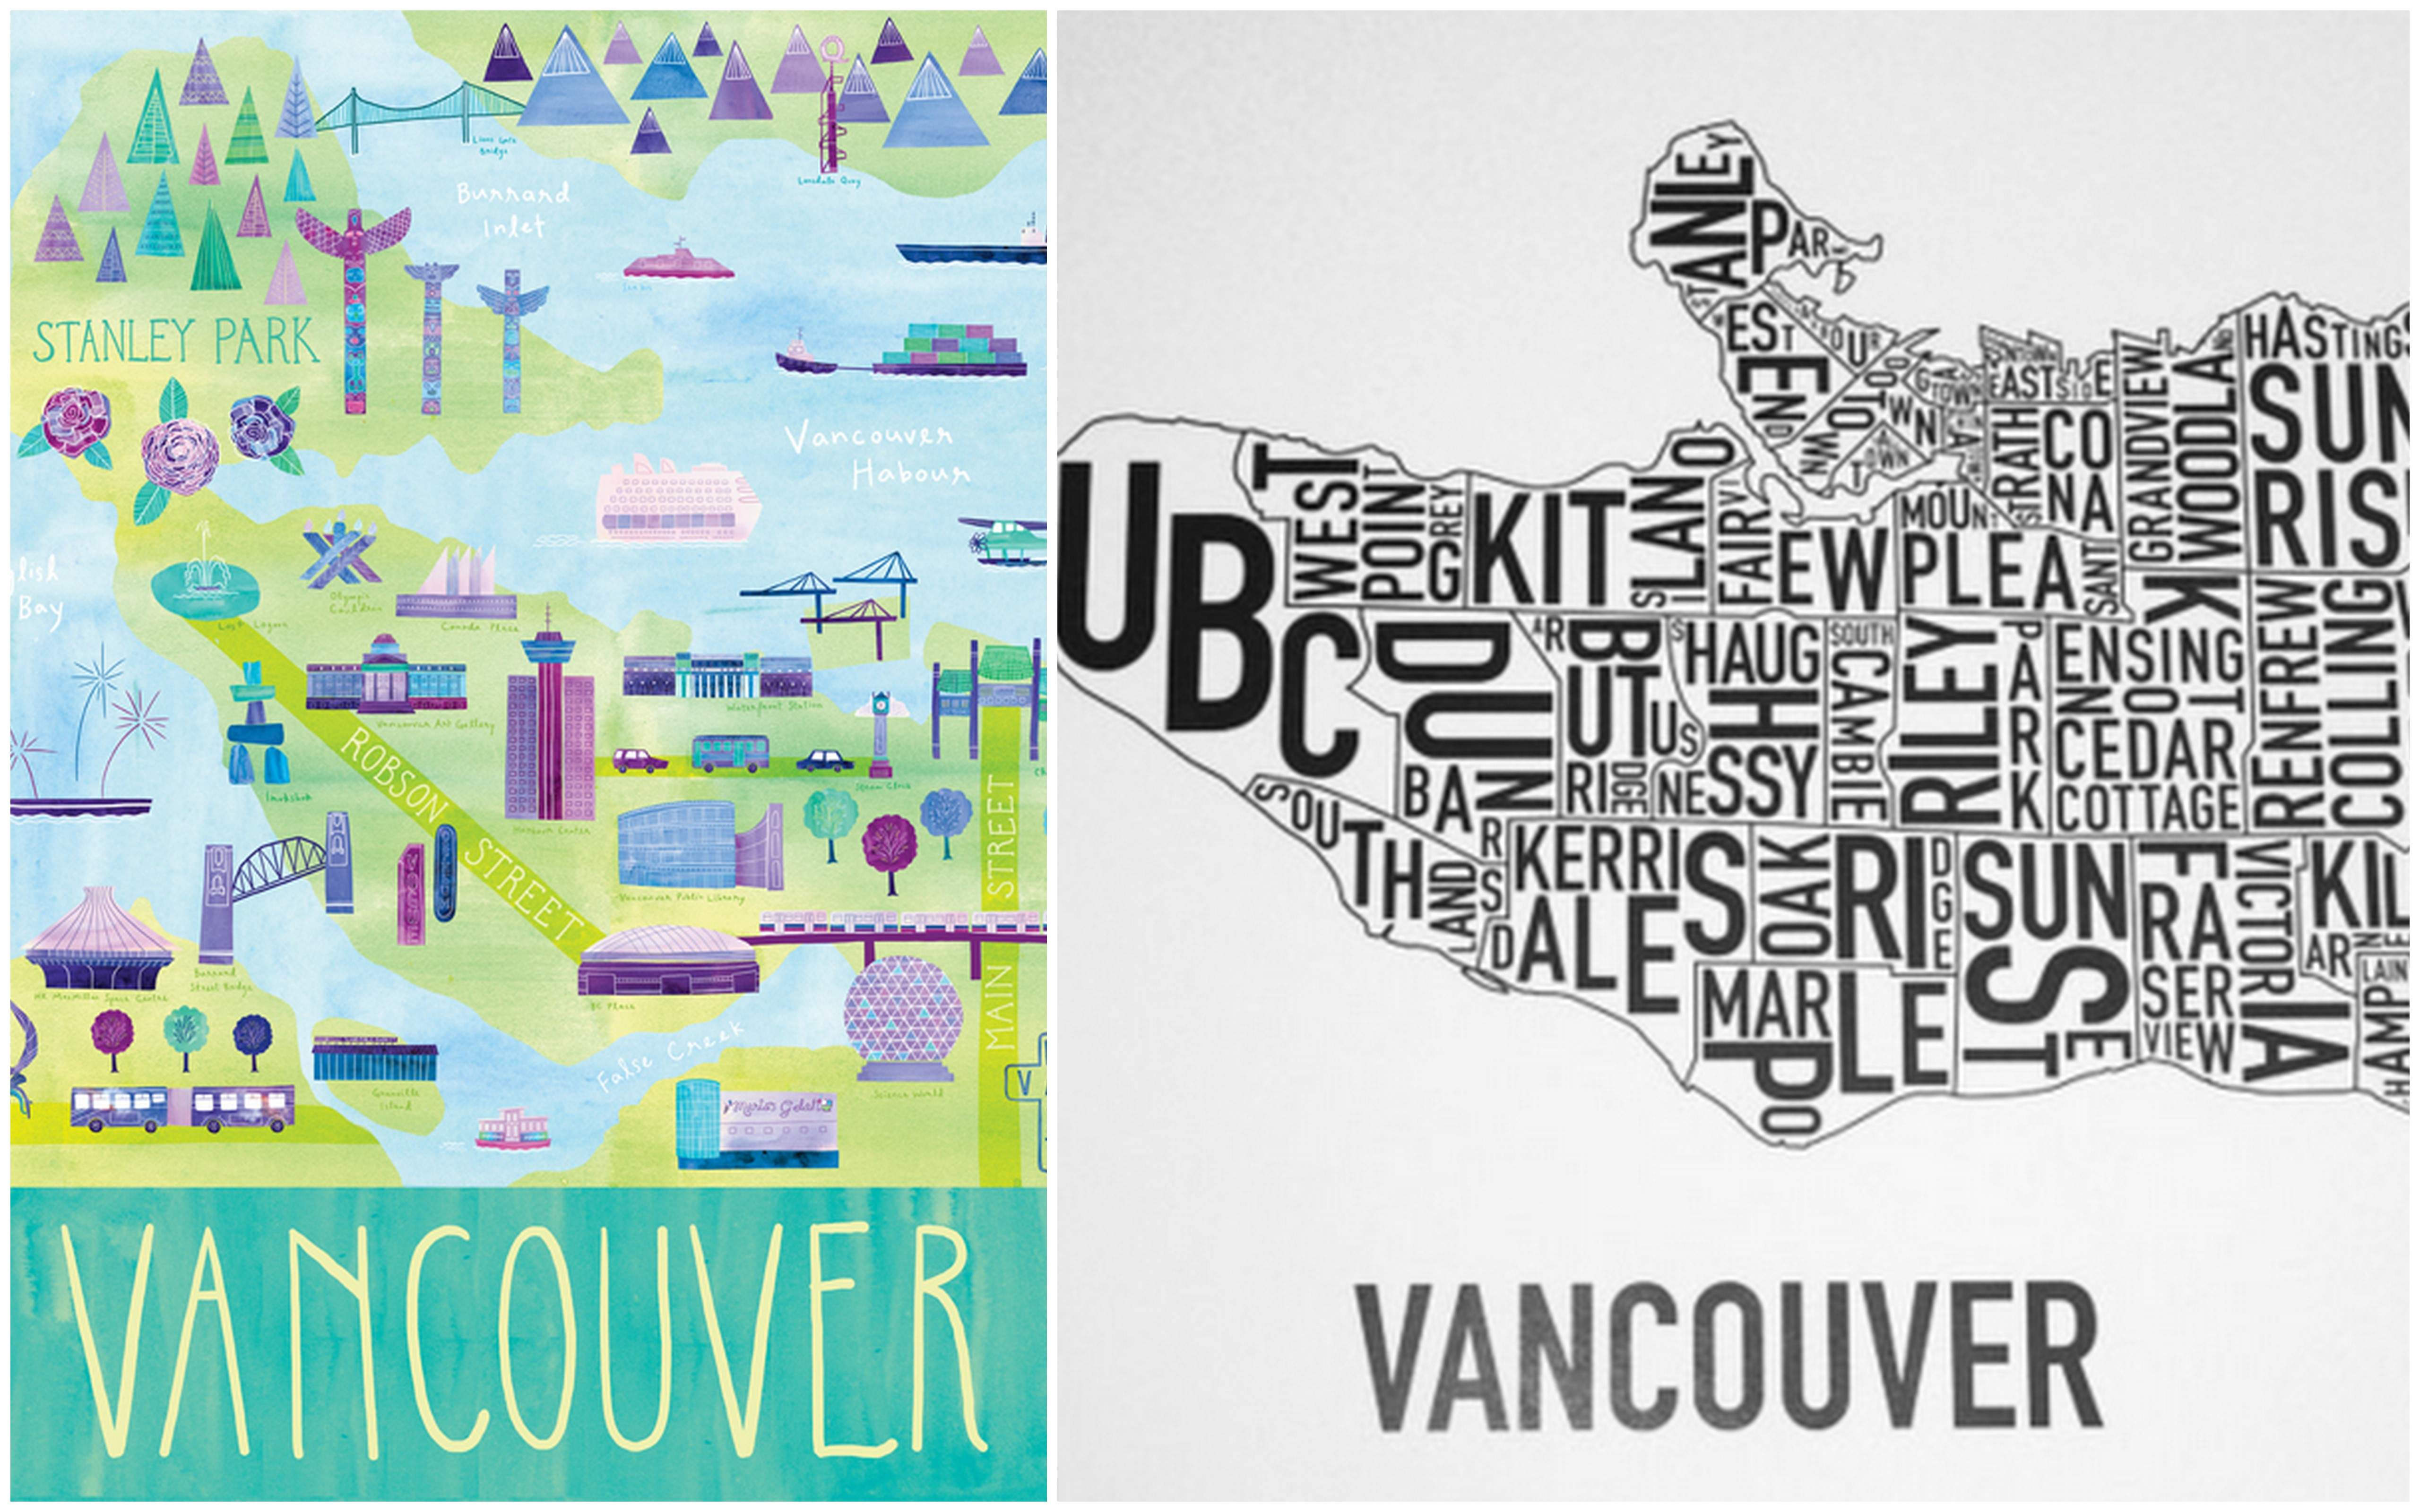 Poster design vancouver - Vancouver Illustration By Marisa Seguin Vs Vancouver Poster By Ork Which One Is Your Favourite